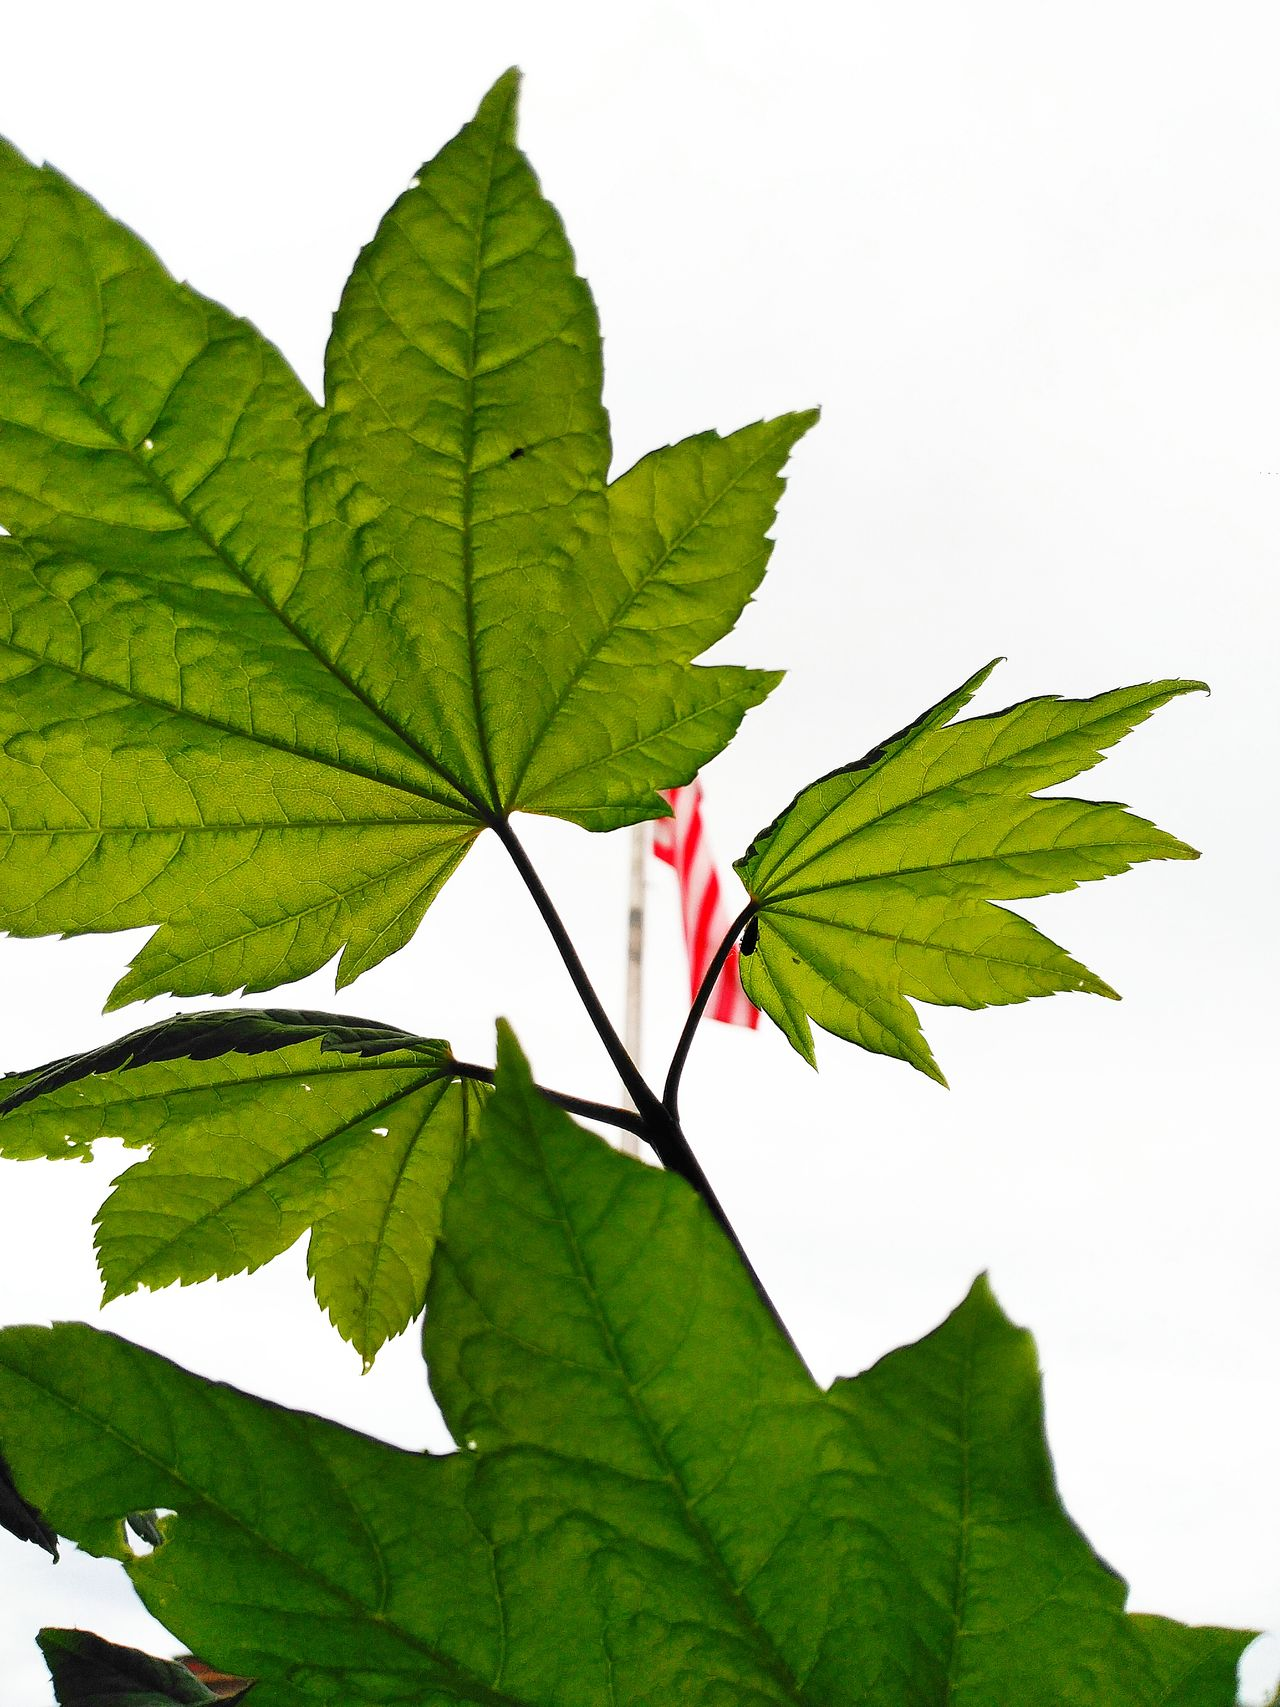 Maple Leafs. United States Flag With Mother Nature. Check This Out Enjoying Life Relaxing Nature Photography Taking Photos Maple Leaf Green Color Red Color White Color Black Color Maple Leaf And The Sky Maple Leaf And United State Flag